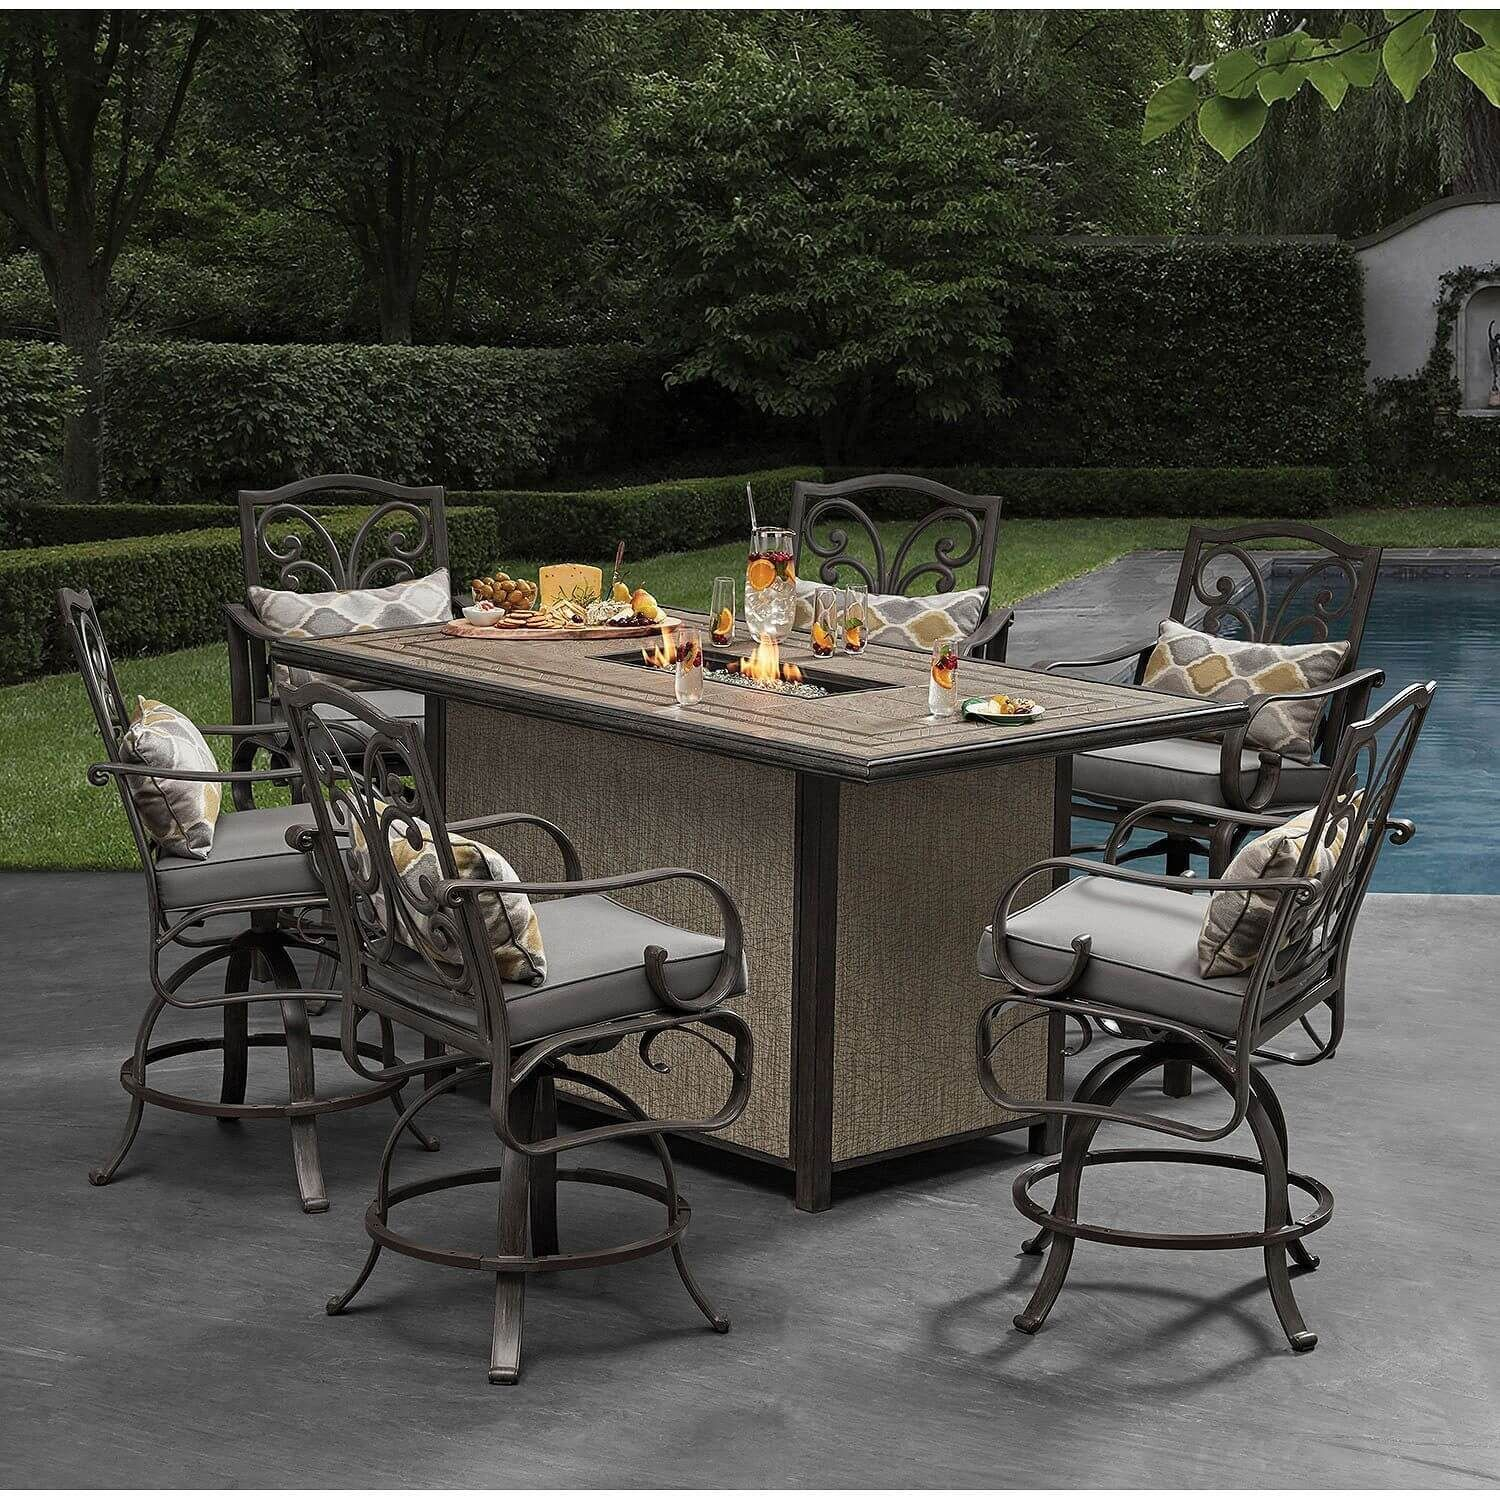 Choosing The Right Bar Height Patio Table In 2021 Bar Height Patio Furniture Patio Furniture Collection Patio Dining Furniture